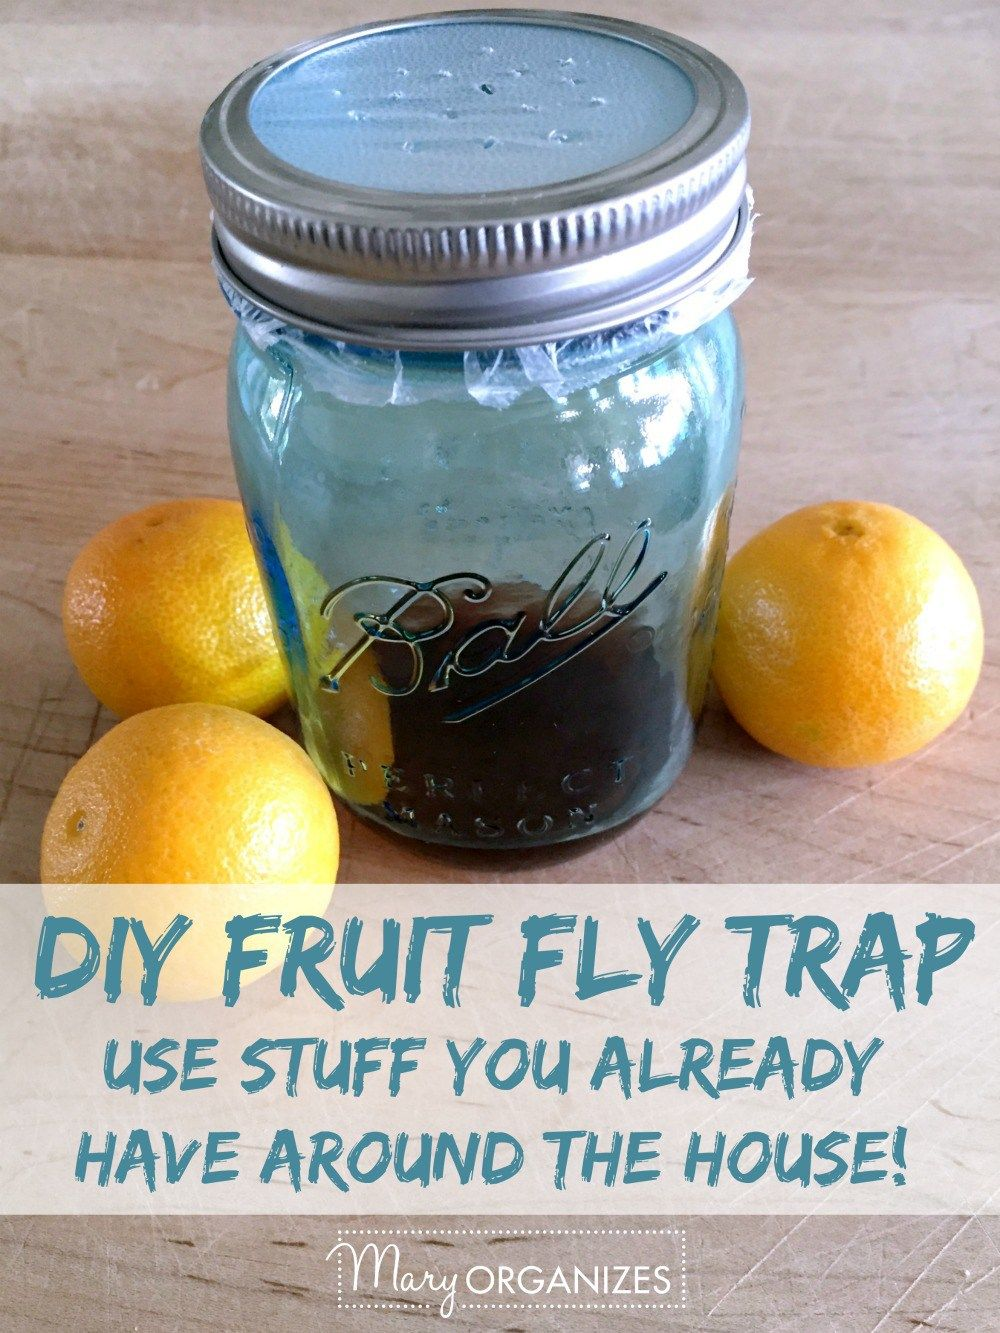 Get Rid Of Fruit Flies For Good | Fly traps and Cleaning solutions